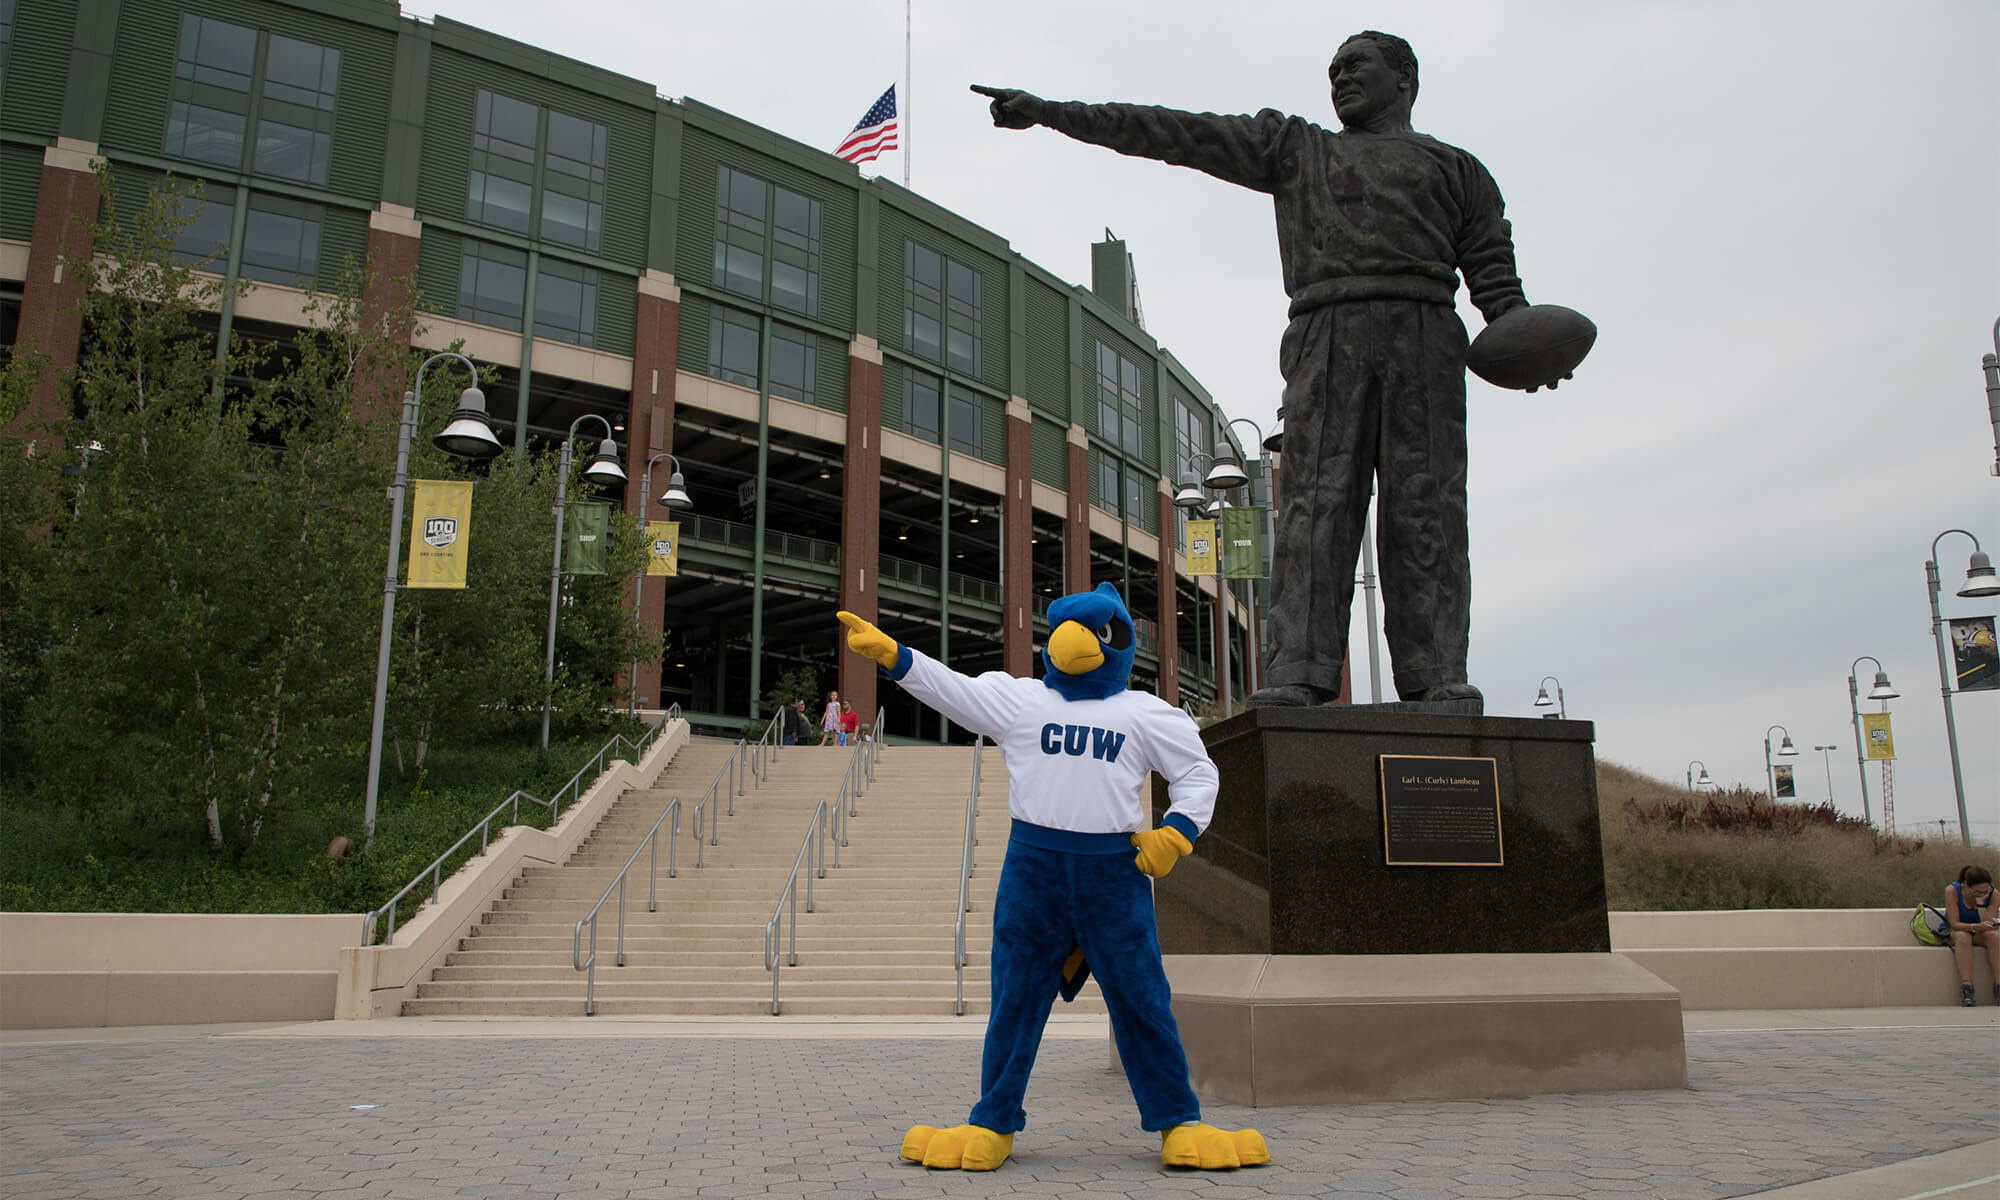 Concordia's MBA is the preferred academic program of the Green Bay Packers